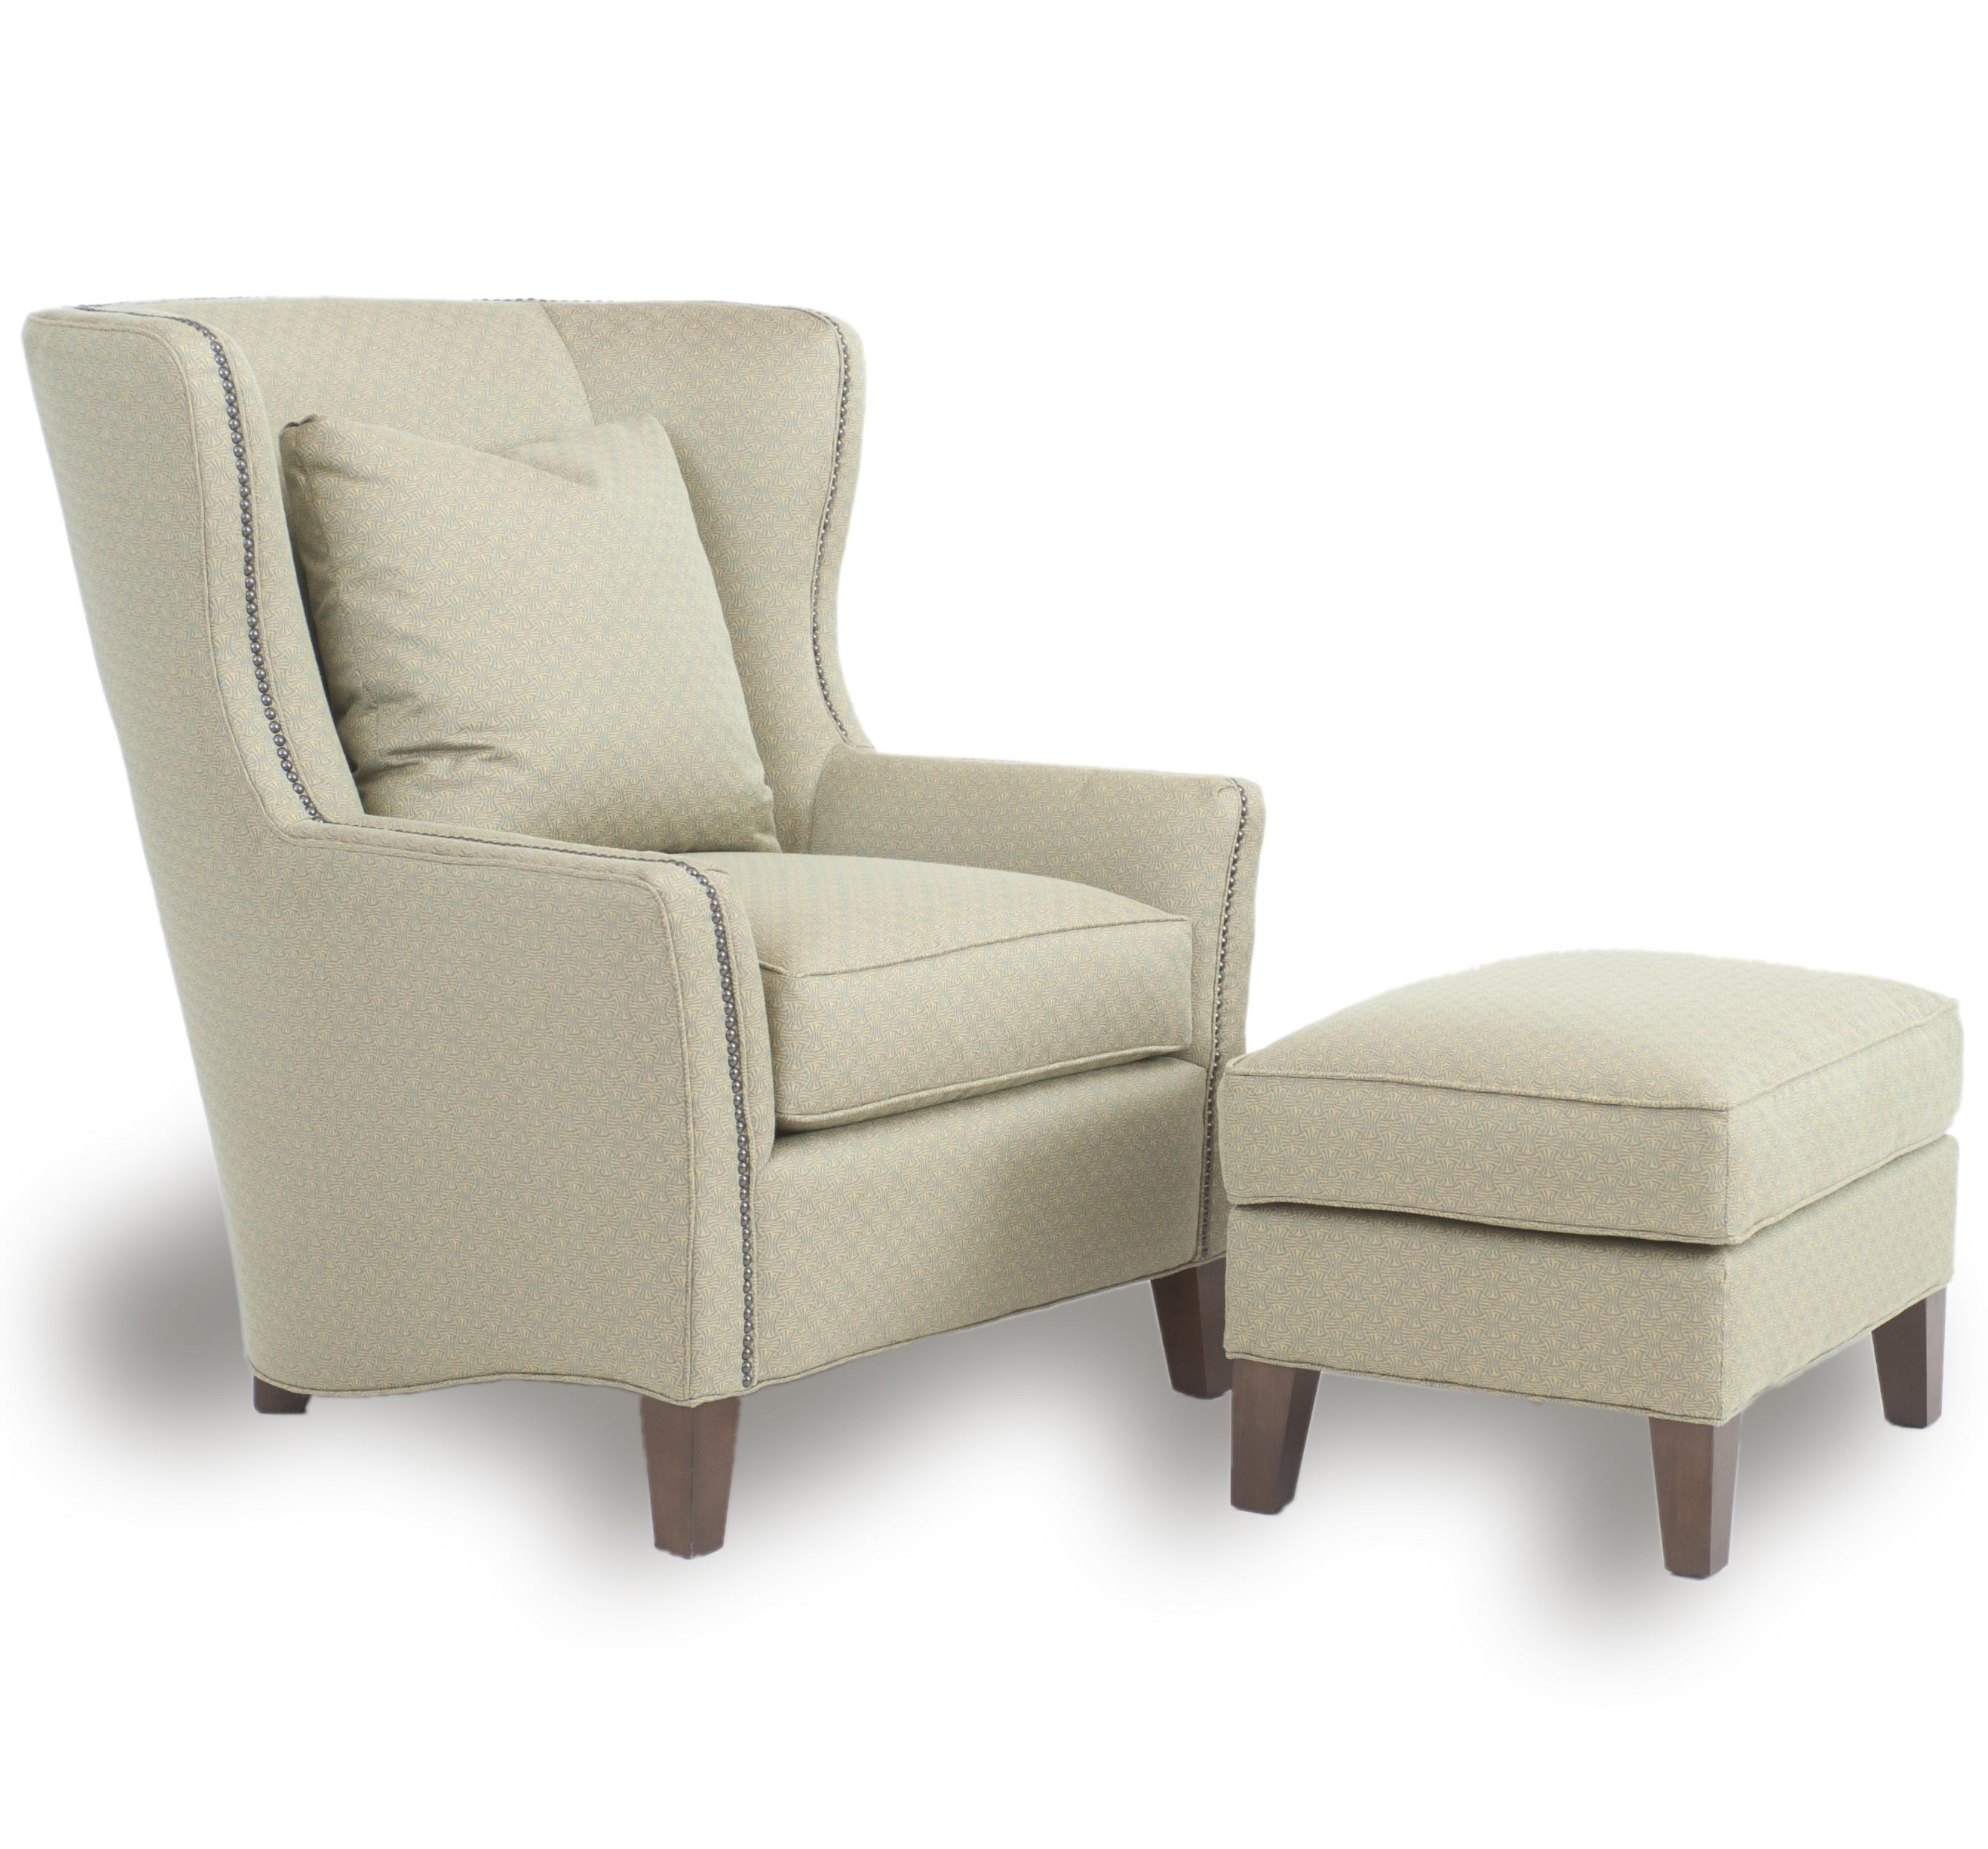 Accent Chairs and Ottomans SB Wingback Chair and Ottoman by Smith Brothers at Sprintz Furniture